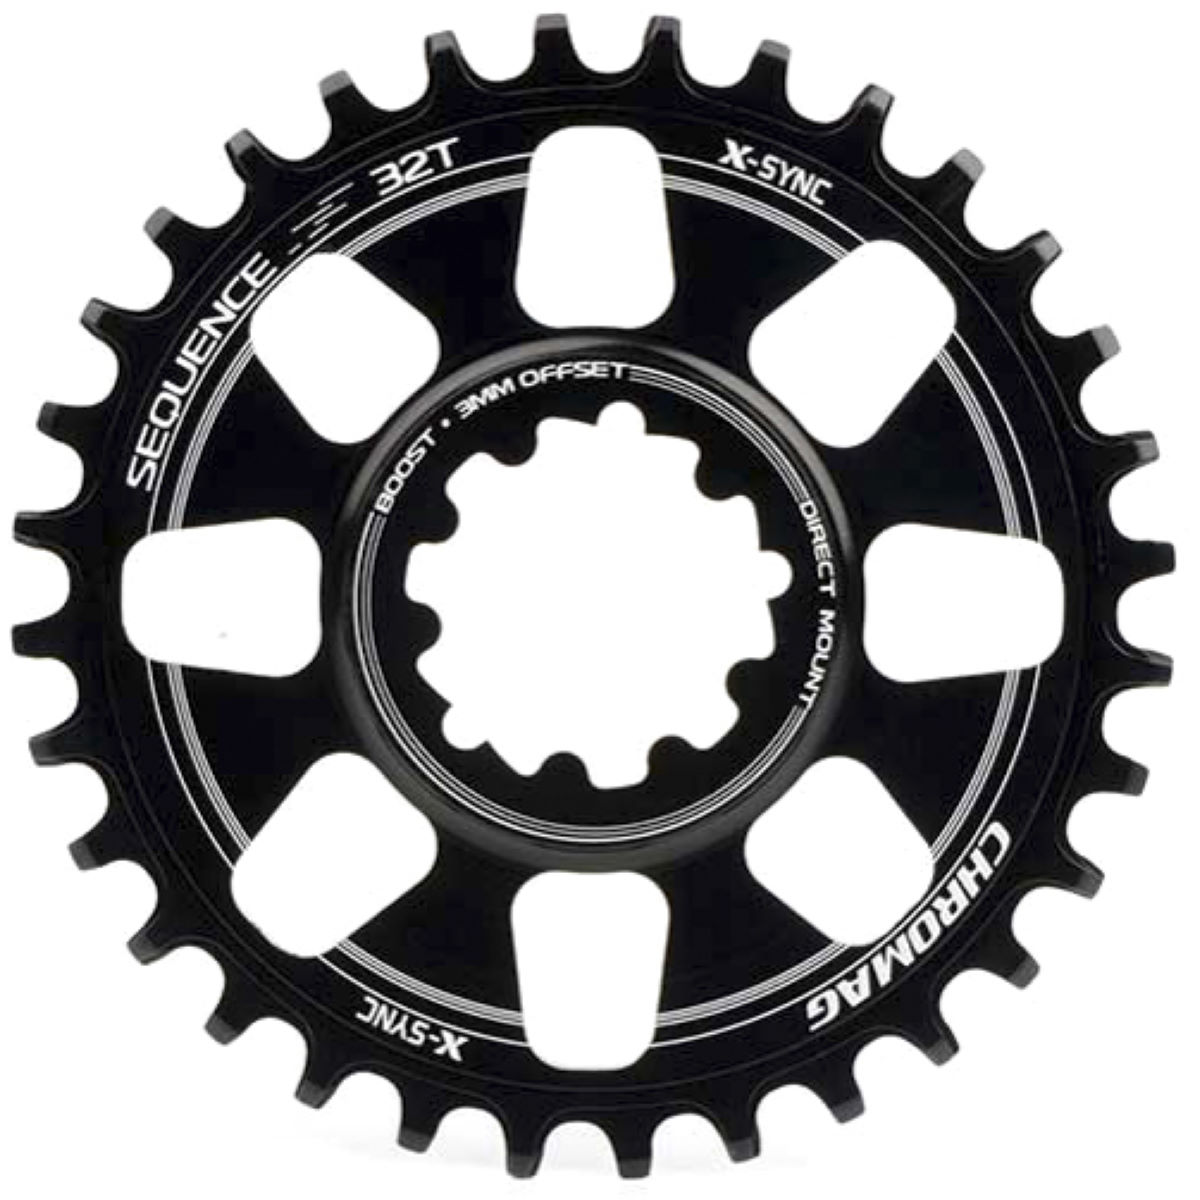 Pédalier Chromag Sequence DM Boost - 30t 9/10/11 Speed Noir Plateaux